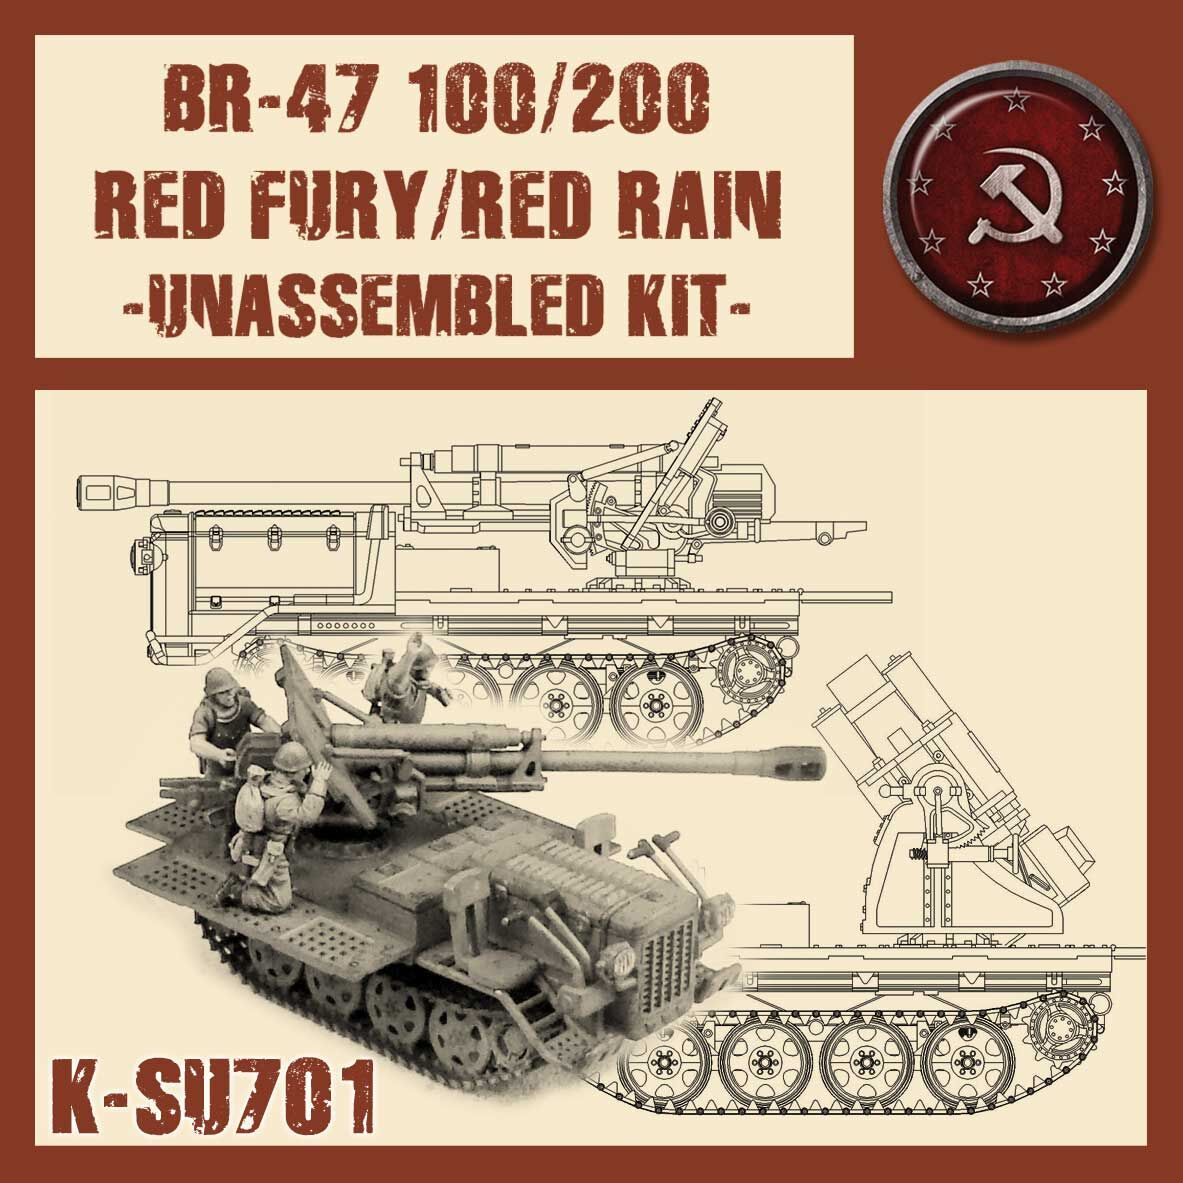 Red Fury/Red Rain - Kit